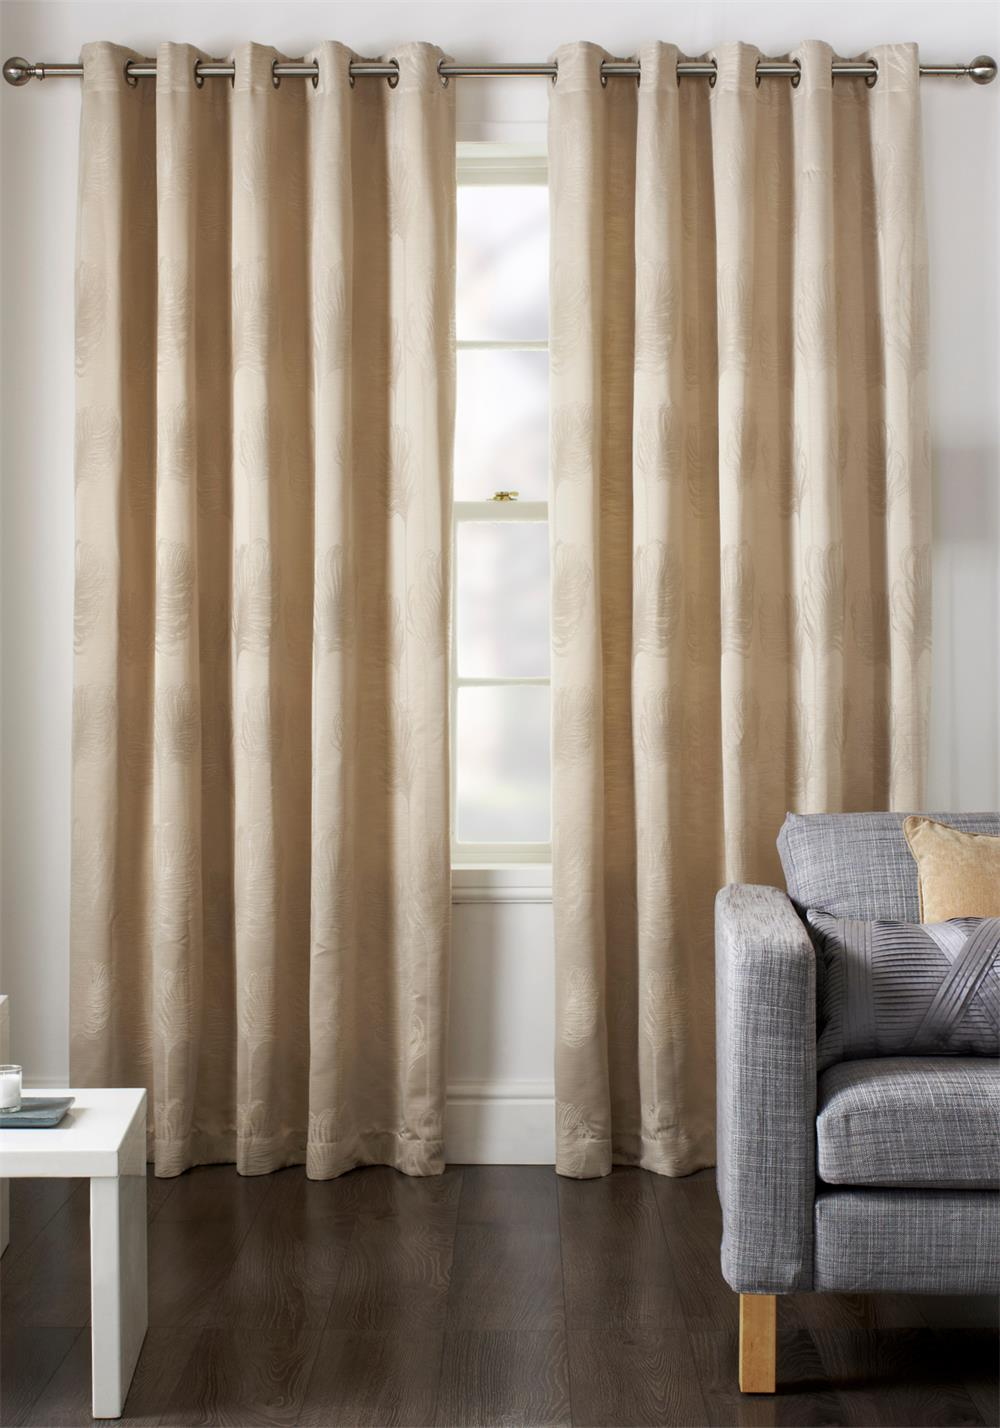 Jeff Banks Diego Fully Lined Eyelet Curtains, Natural